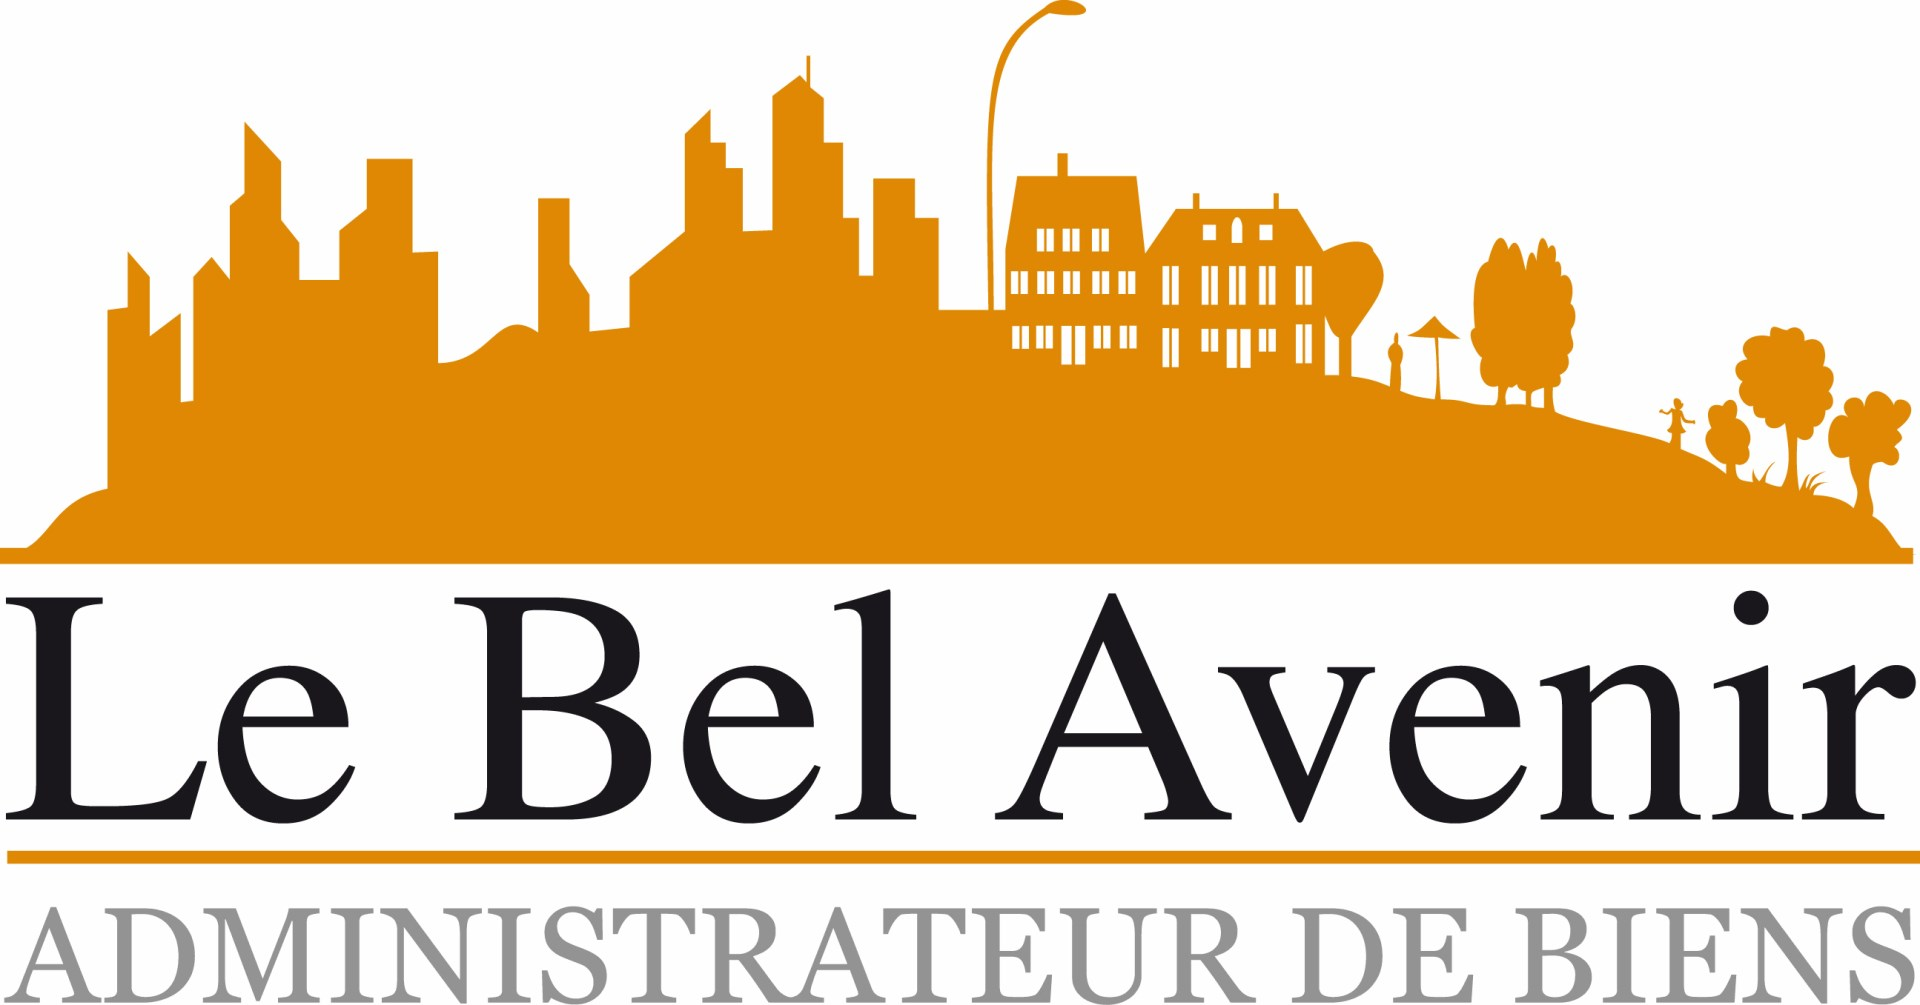 Le bel avenir agence immobili re paris 6 me for Agence immobiliere 75006